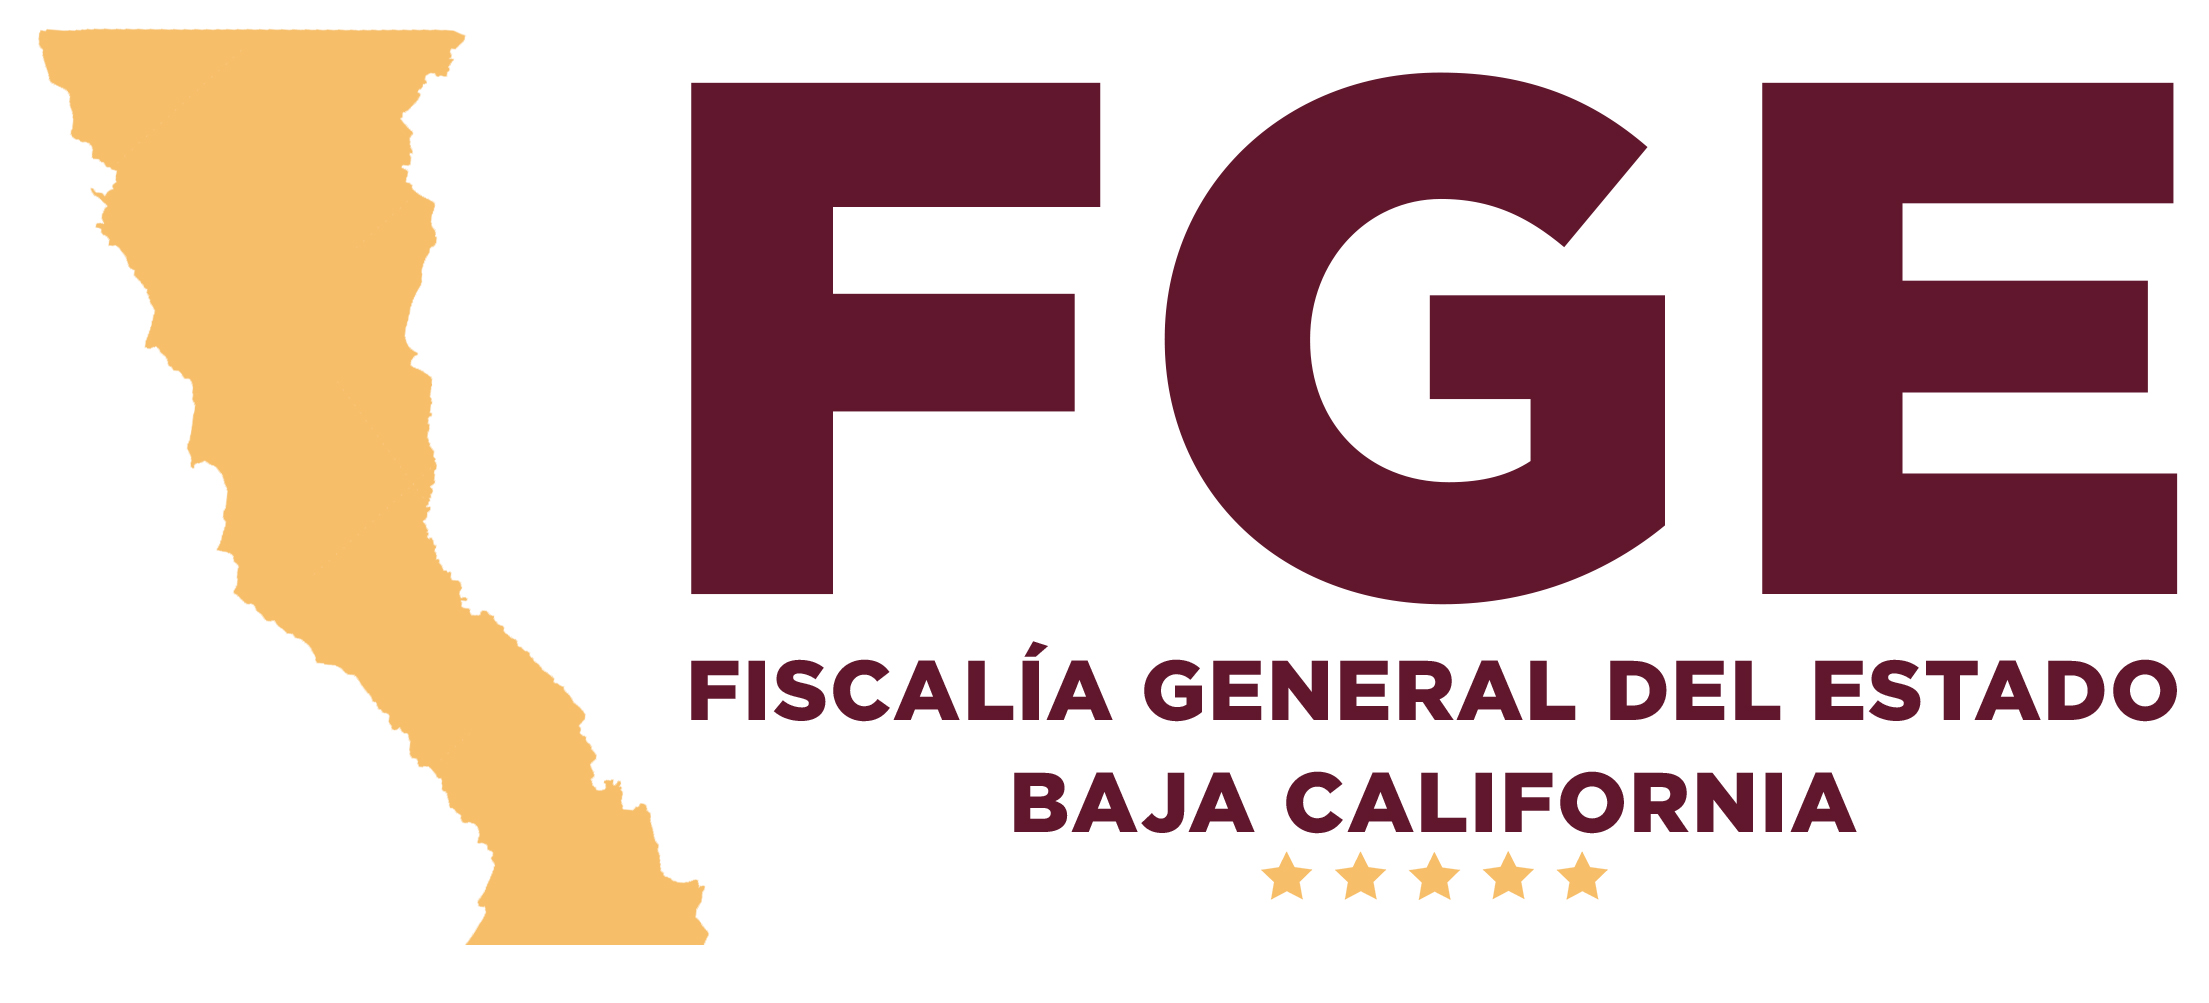 Fiscalía General del Estado de Baja California